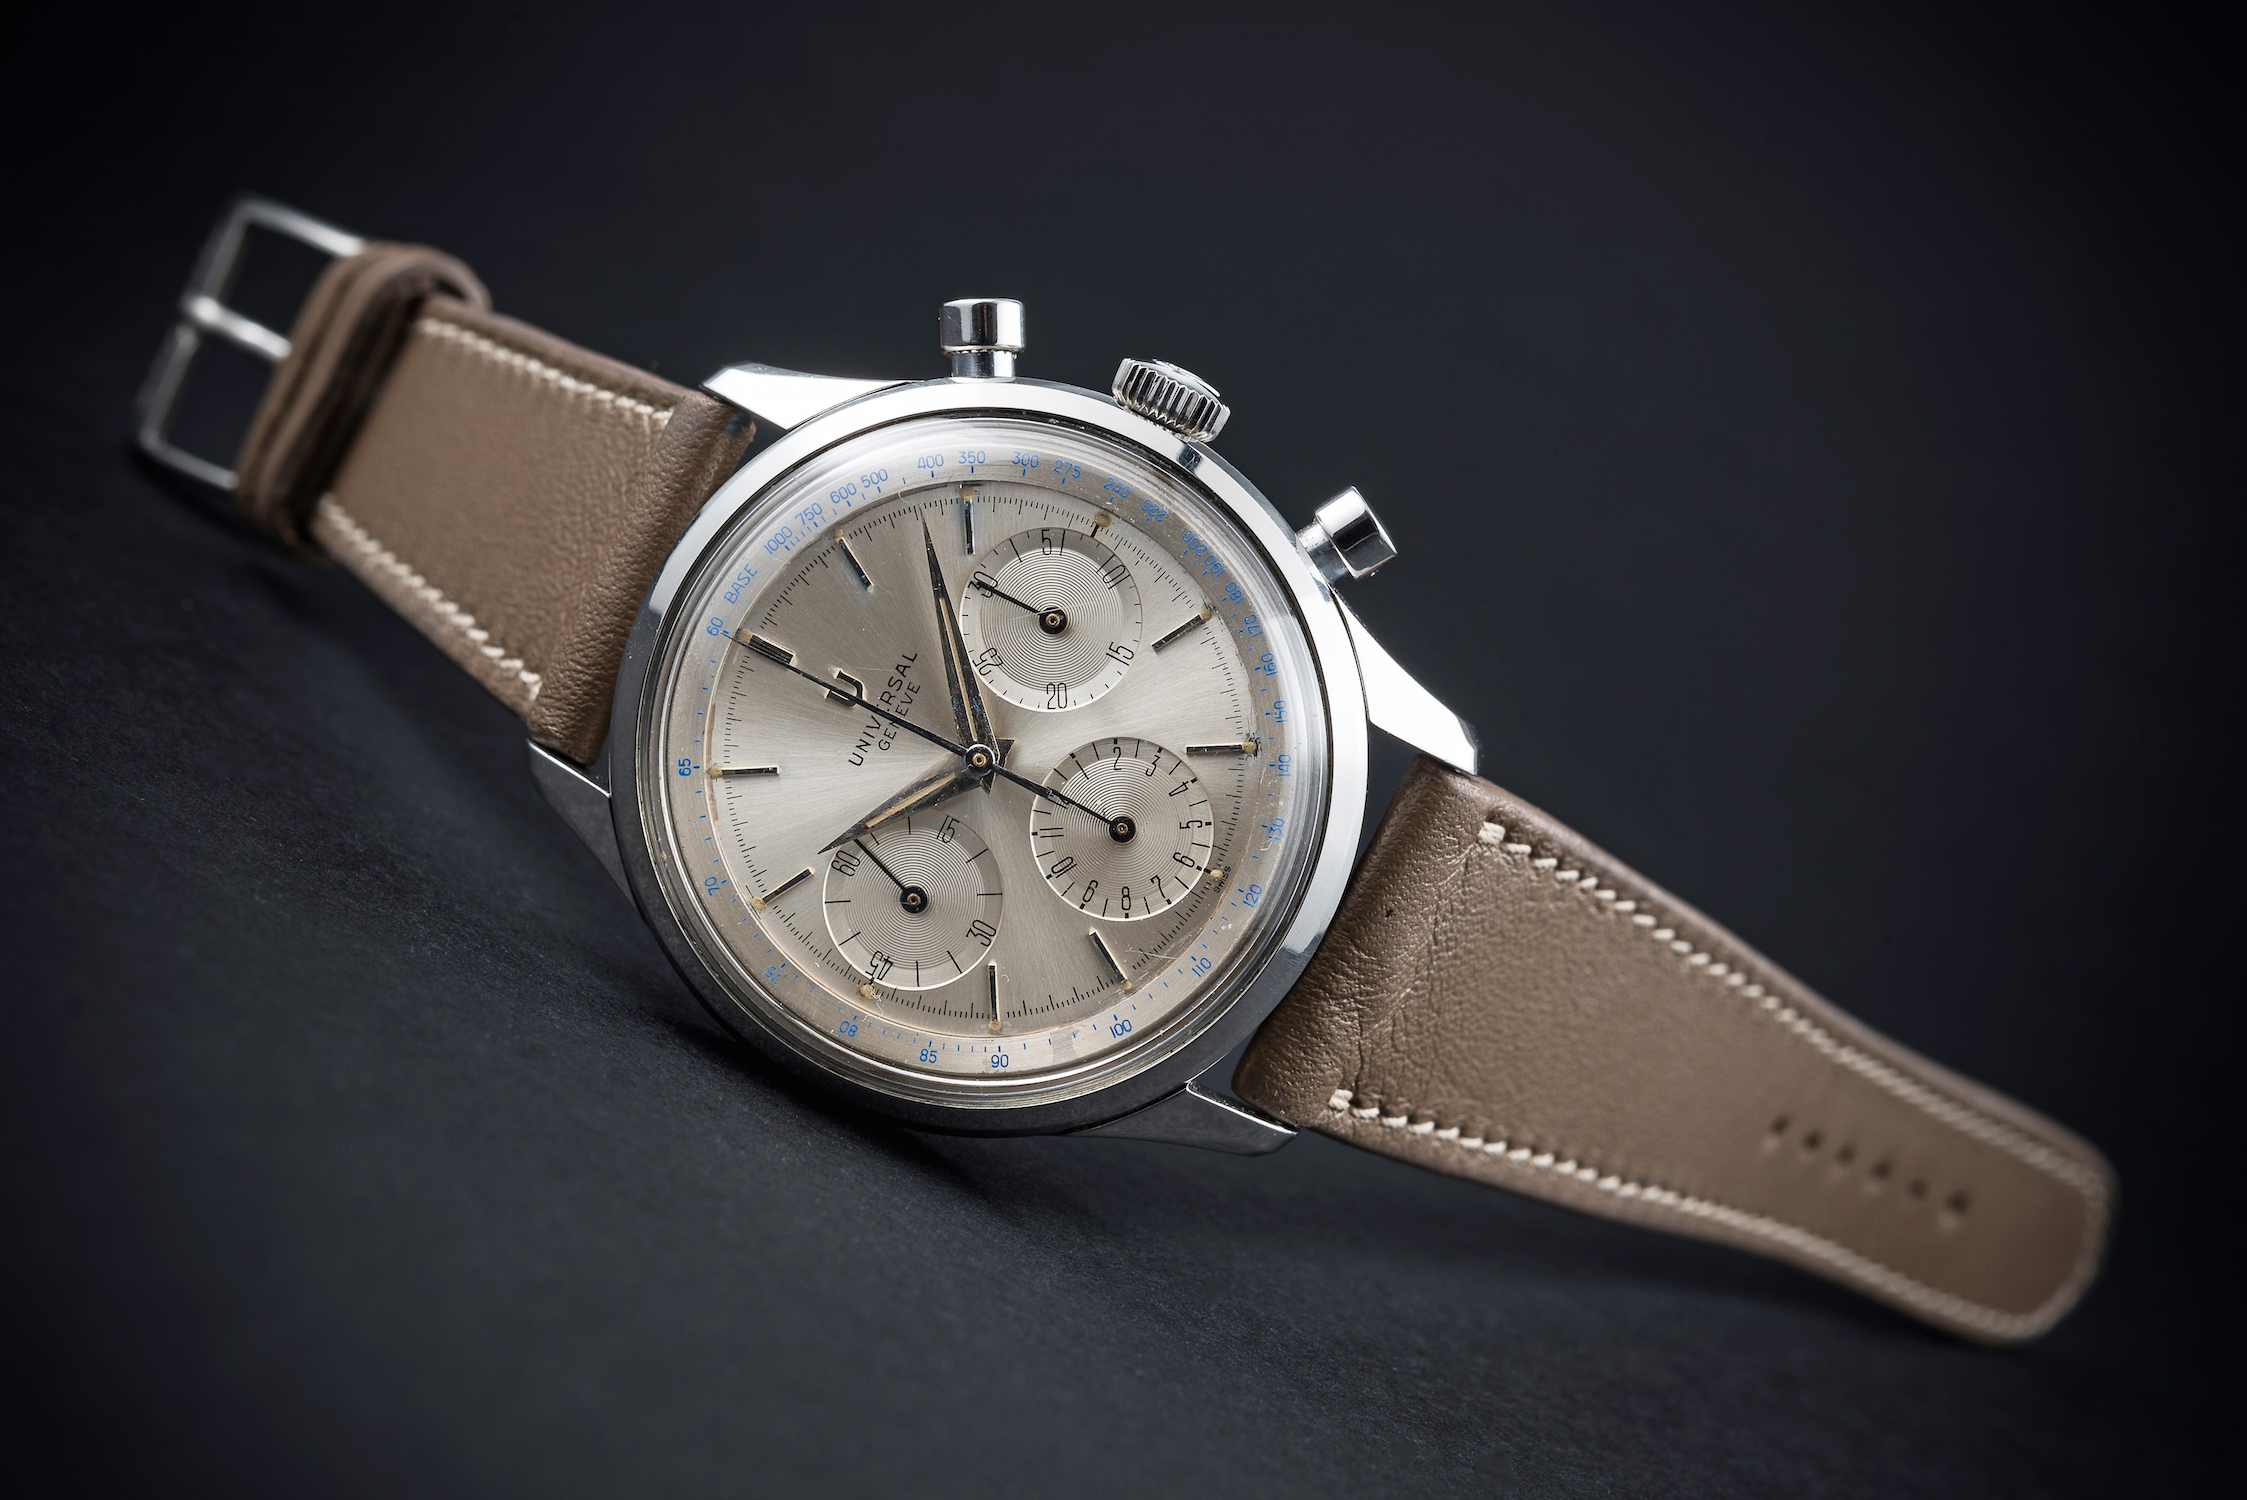 Lot 511 - A RARE GENTLEMAN'S LARGE SIZE STAINLESS STEEL UNIVERSAL GENEVE CHRONOGRAPH WRIST WATCH CIRCA